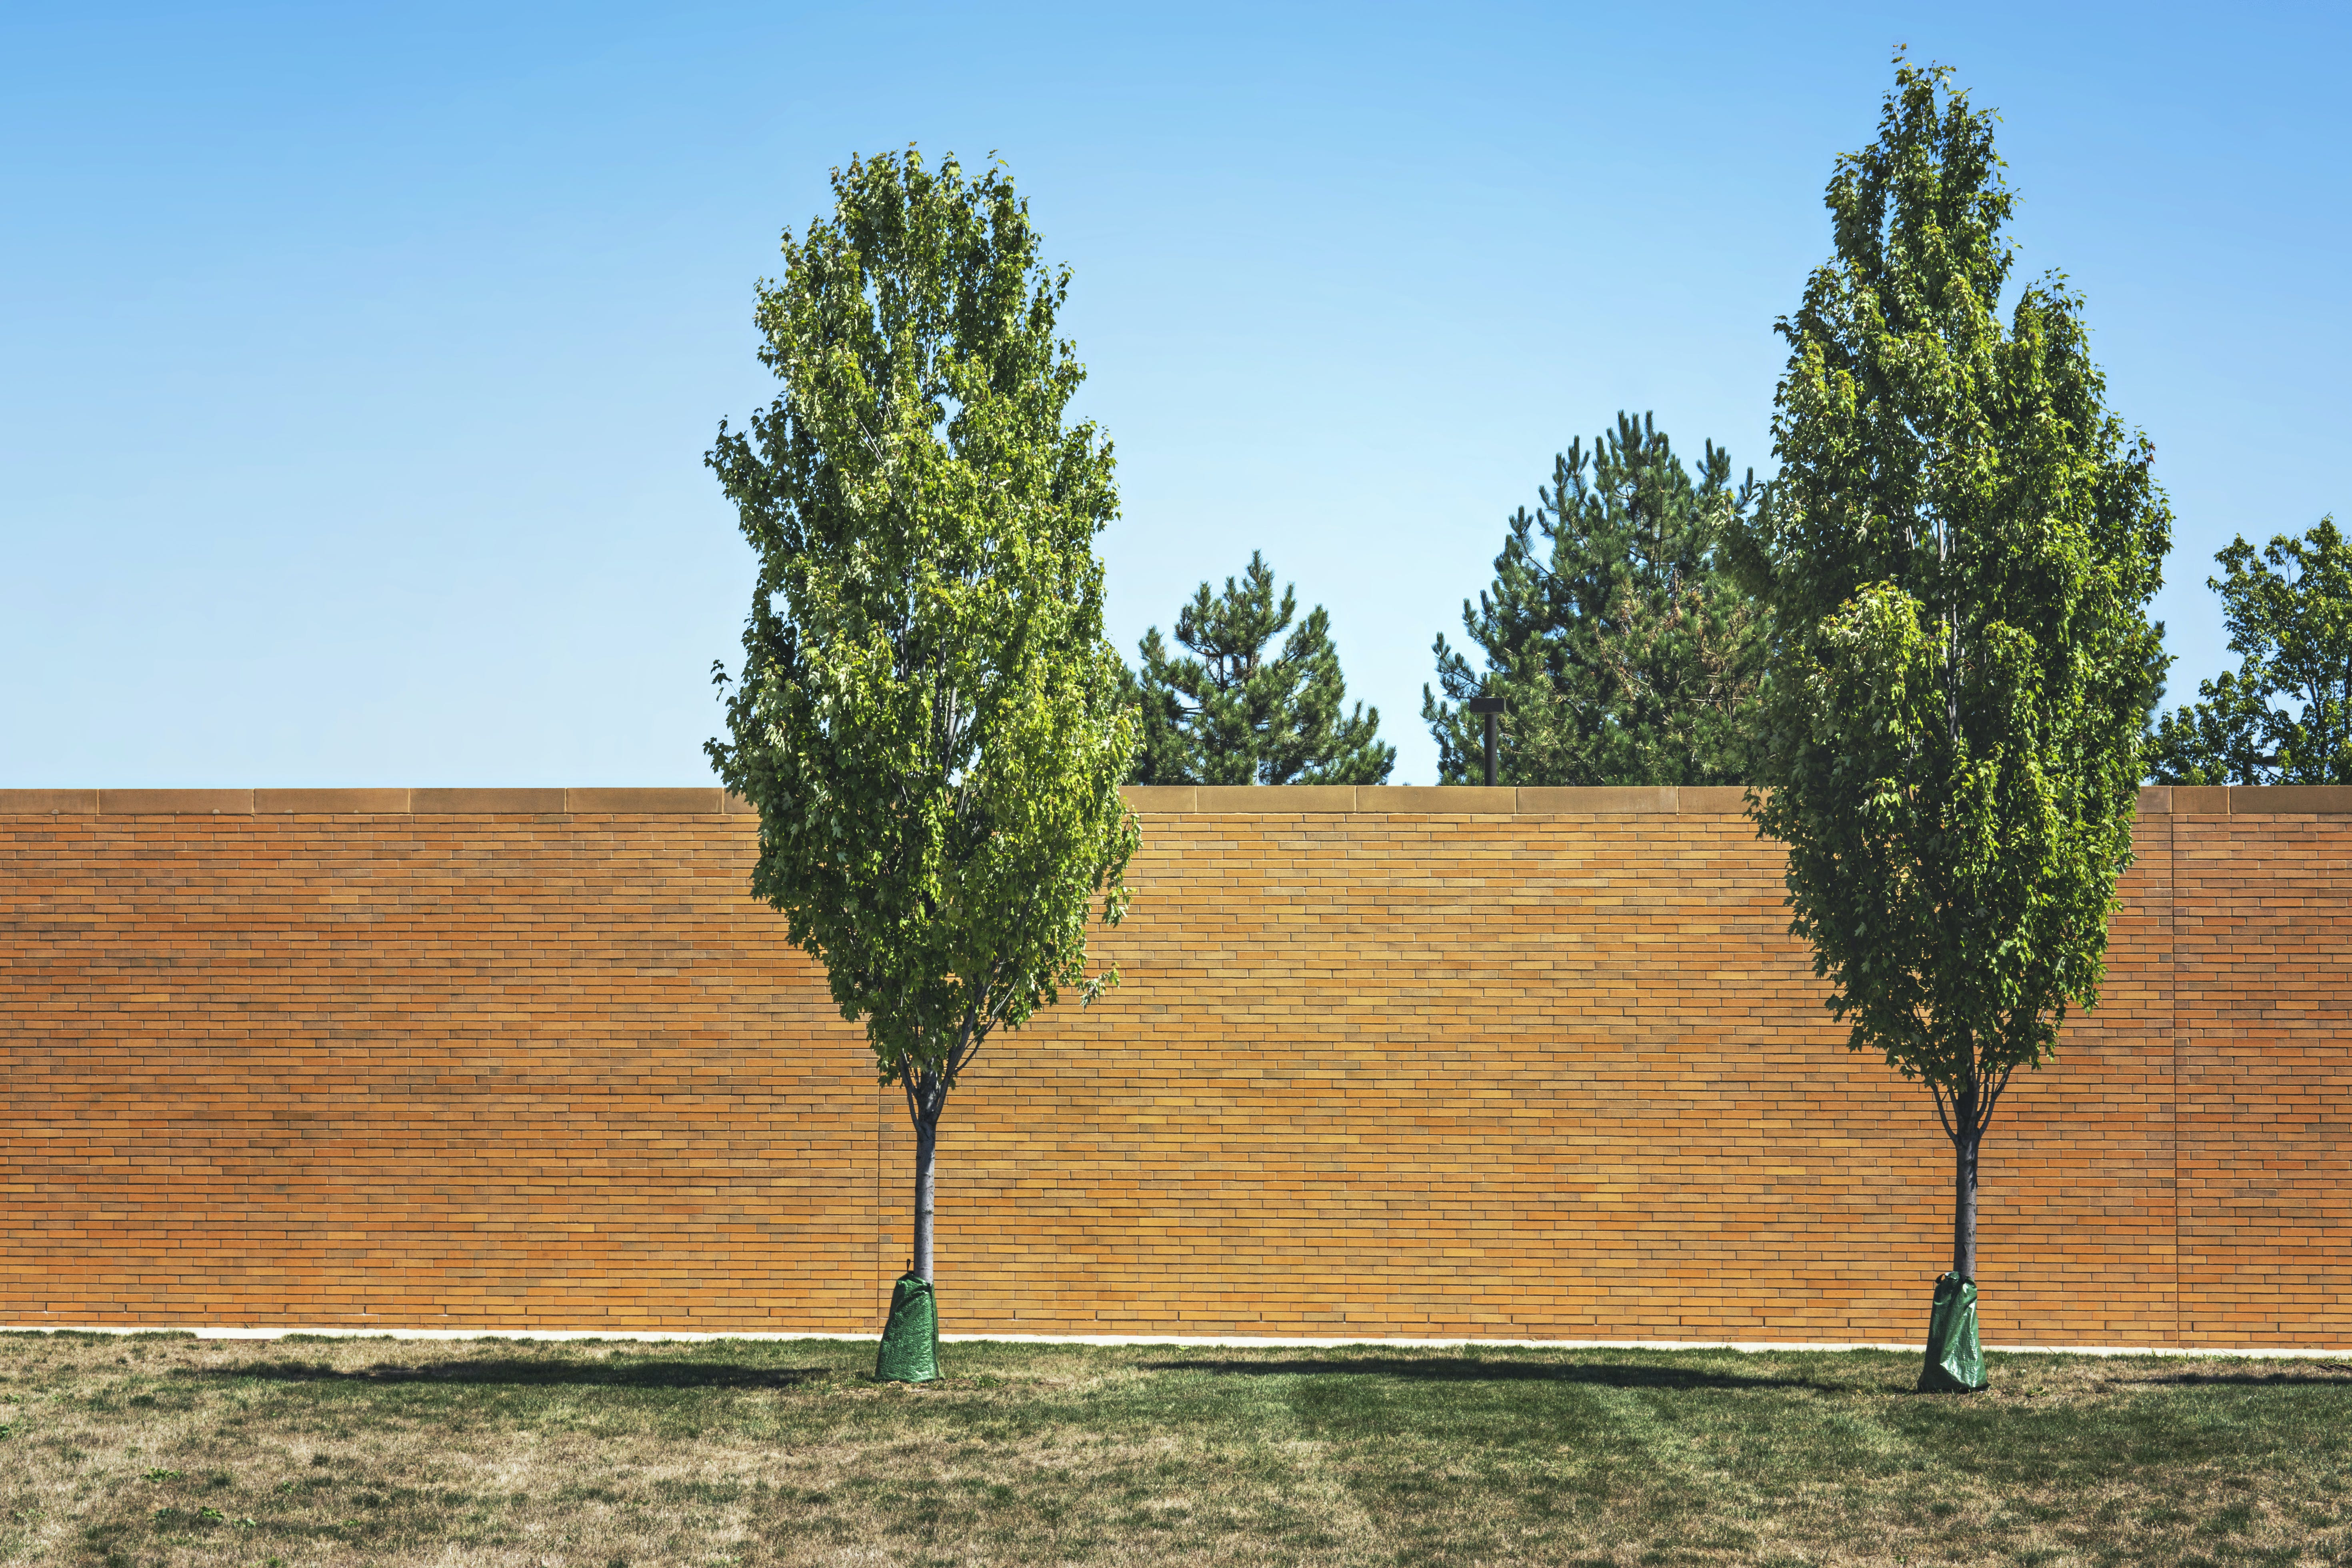 Two Green Leafed Trees Near Bricked Wall